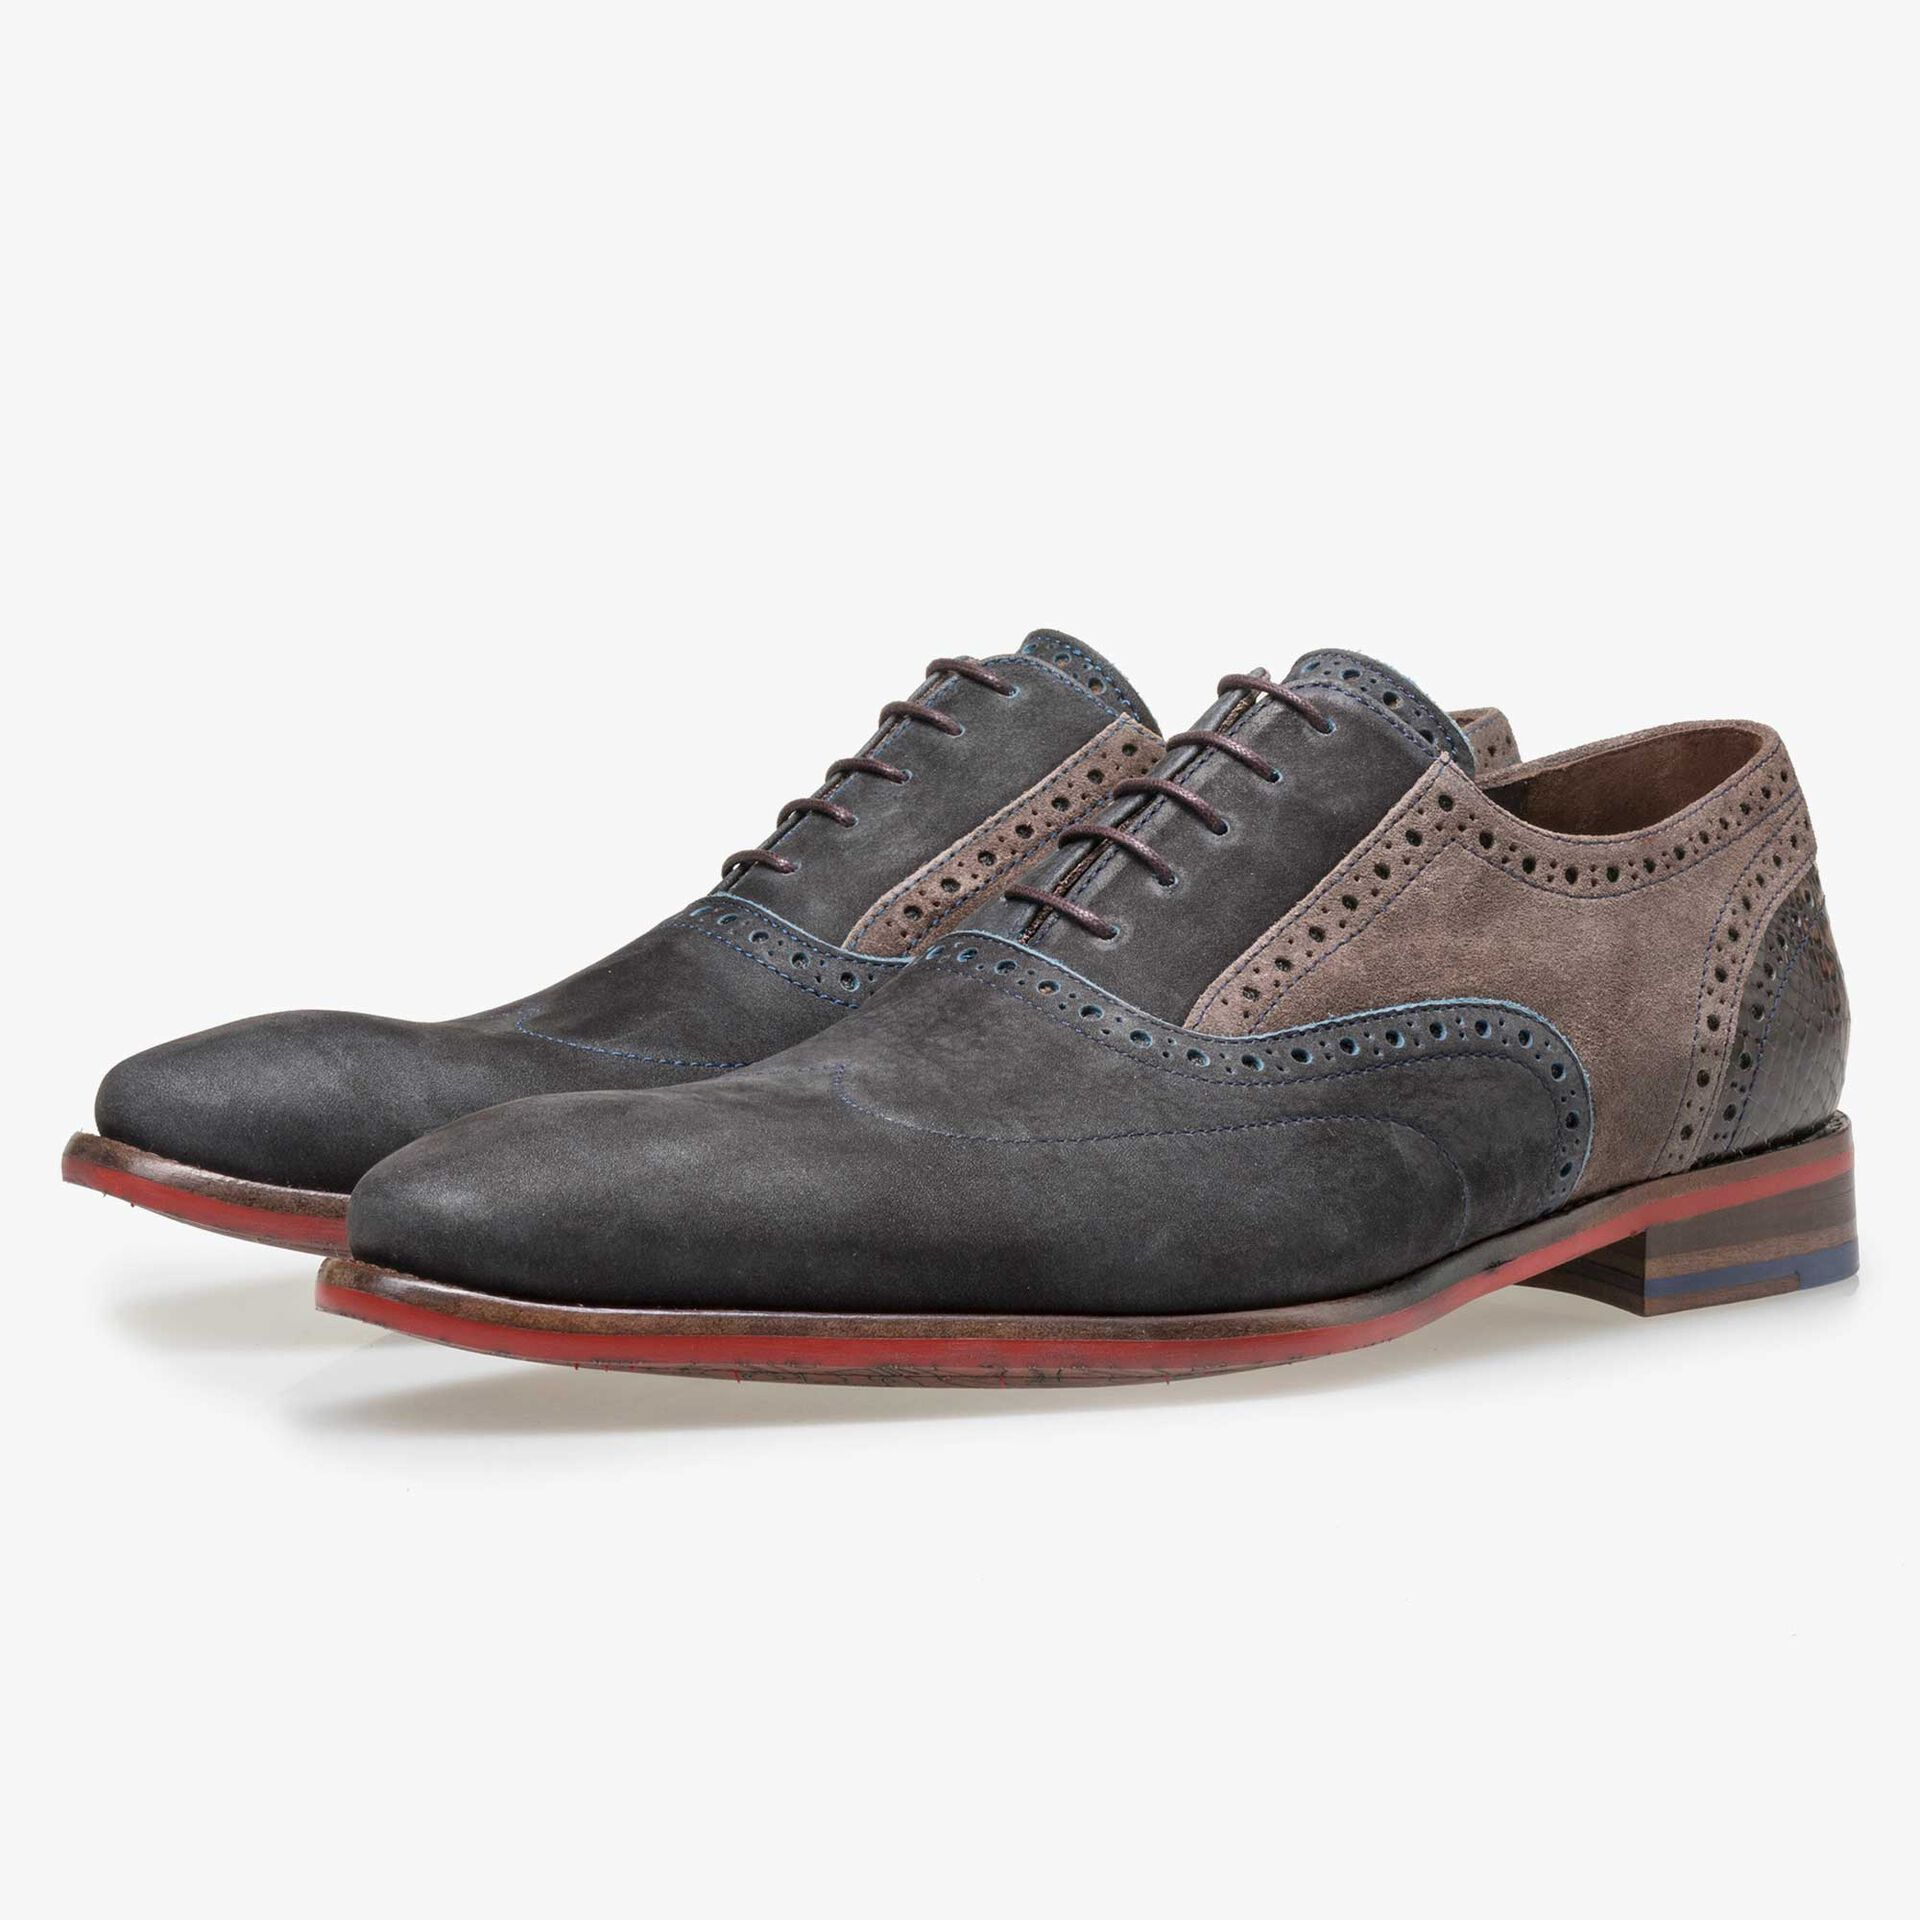 Floris van Bommel blue nubuck brogue lace shoe